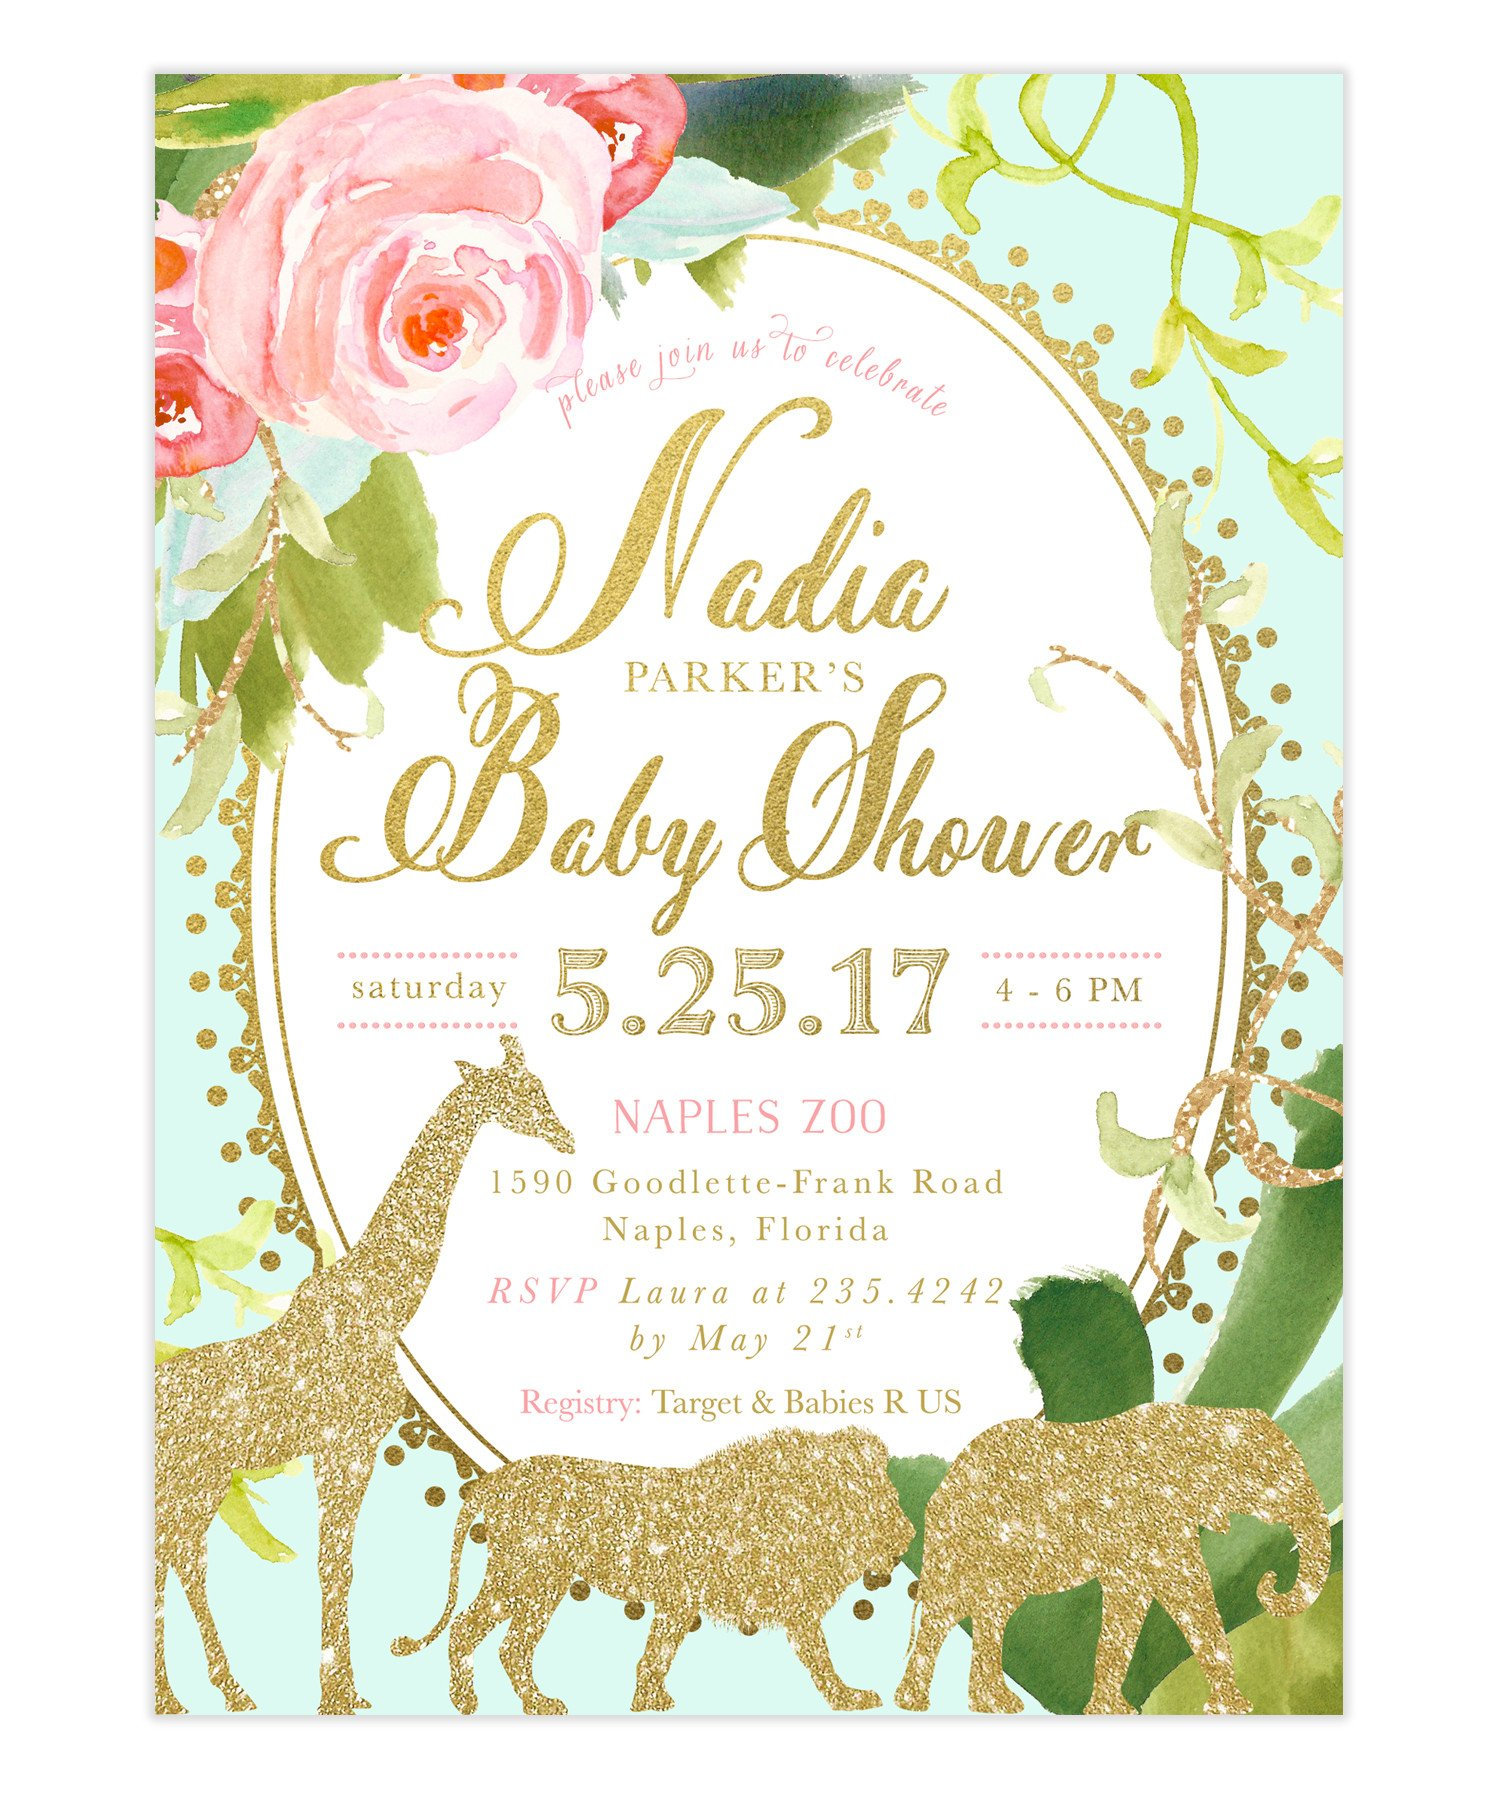 Full Size of Baby Shower:baby Boy Shower Ideas Free Printable Baby Shower Games Free Baby Shower Ideas Unique Baby Shower Decorations Homemade Baby Shower Decorations Unique Baby Shower Themes Nautical Baby Shower Invitations For Boys Printable Baby Shower Invitations For Girl